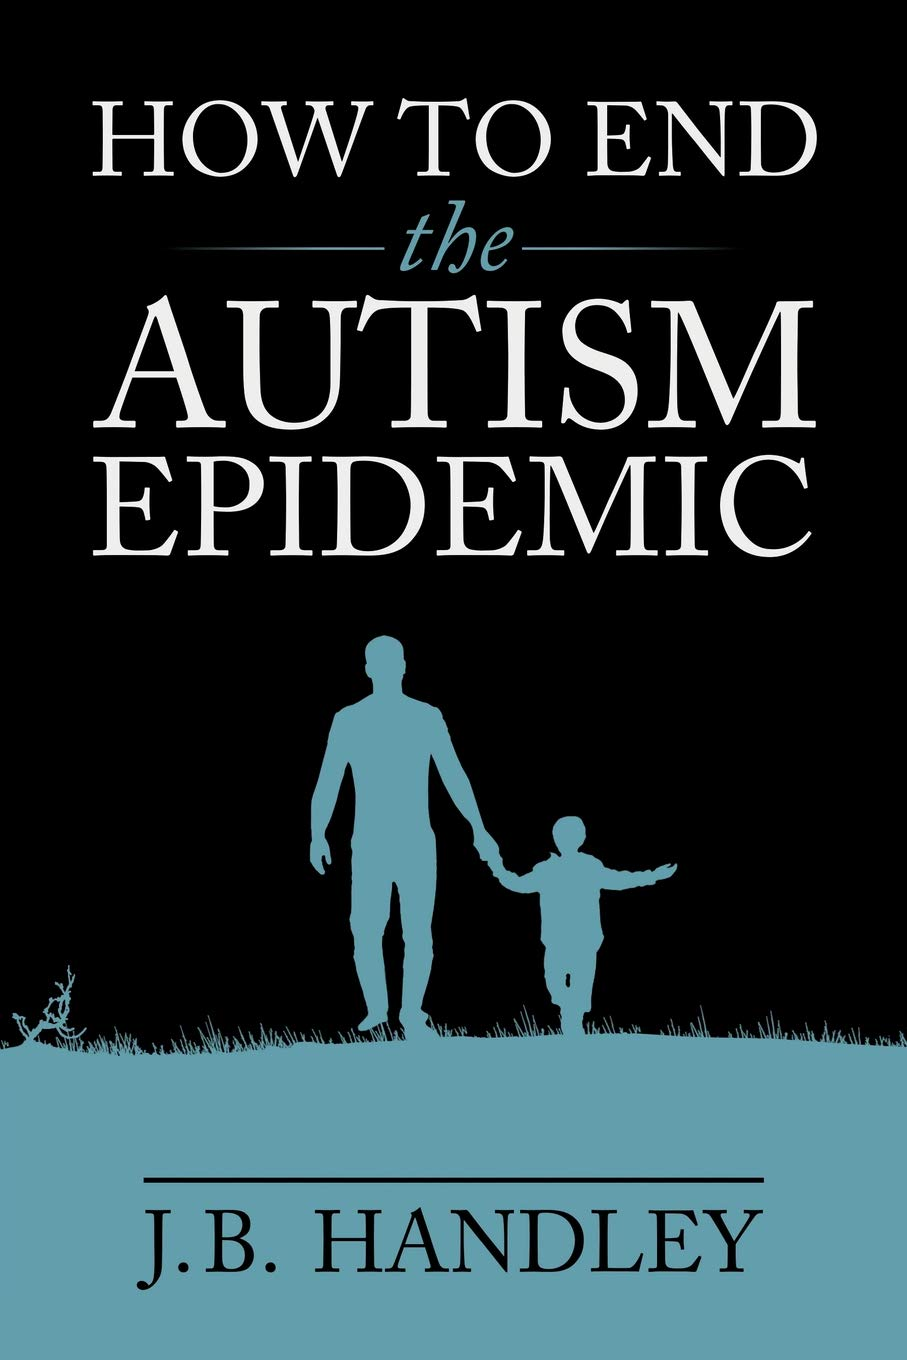 How to End the Autism Epidemic: J.B. Handley: 9781603588249 ...